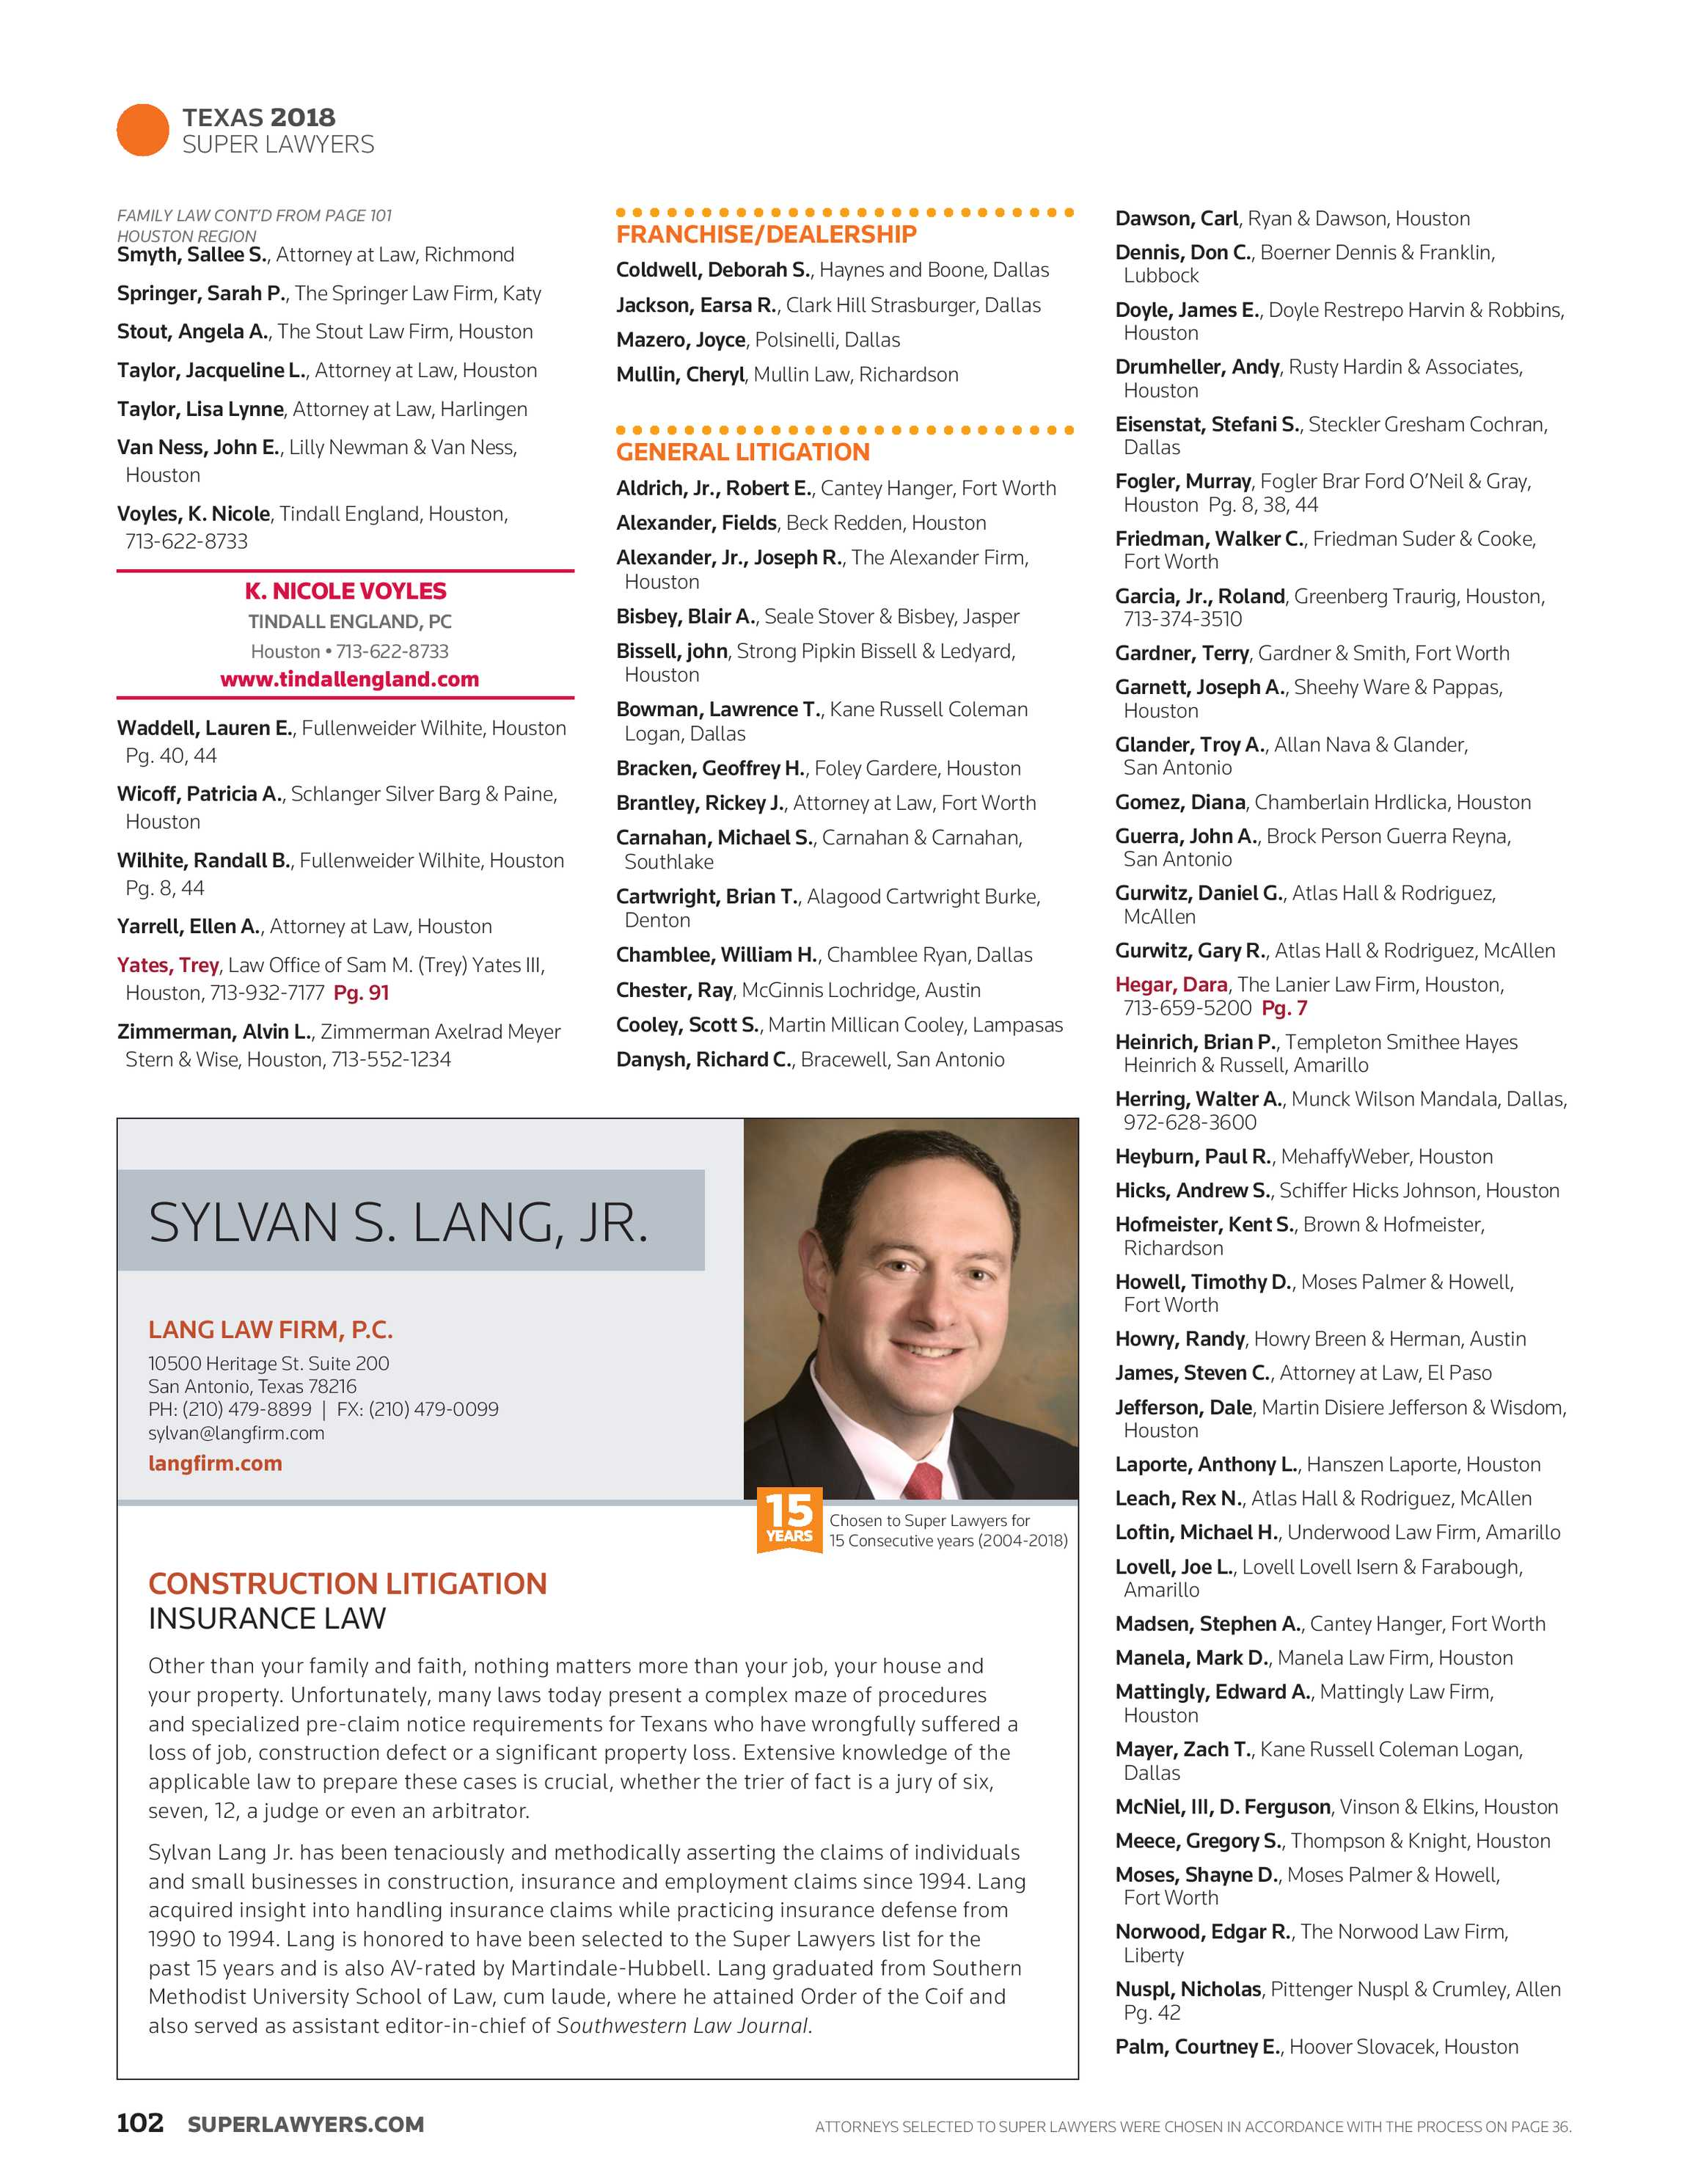 Super Lawyers - Texas 2018 - page 101